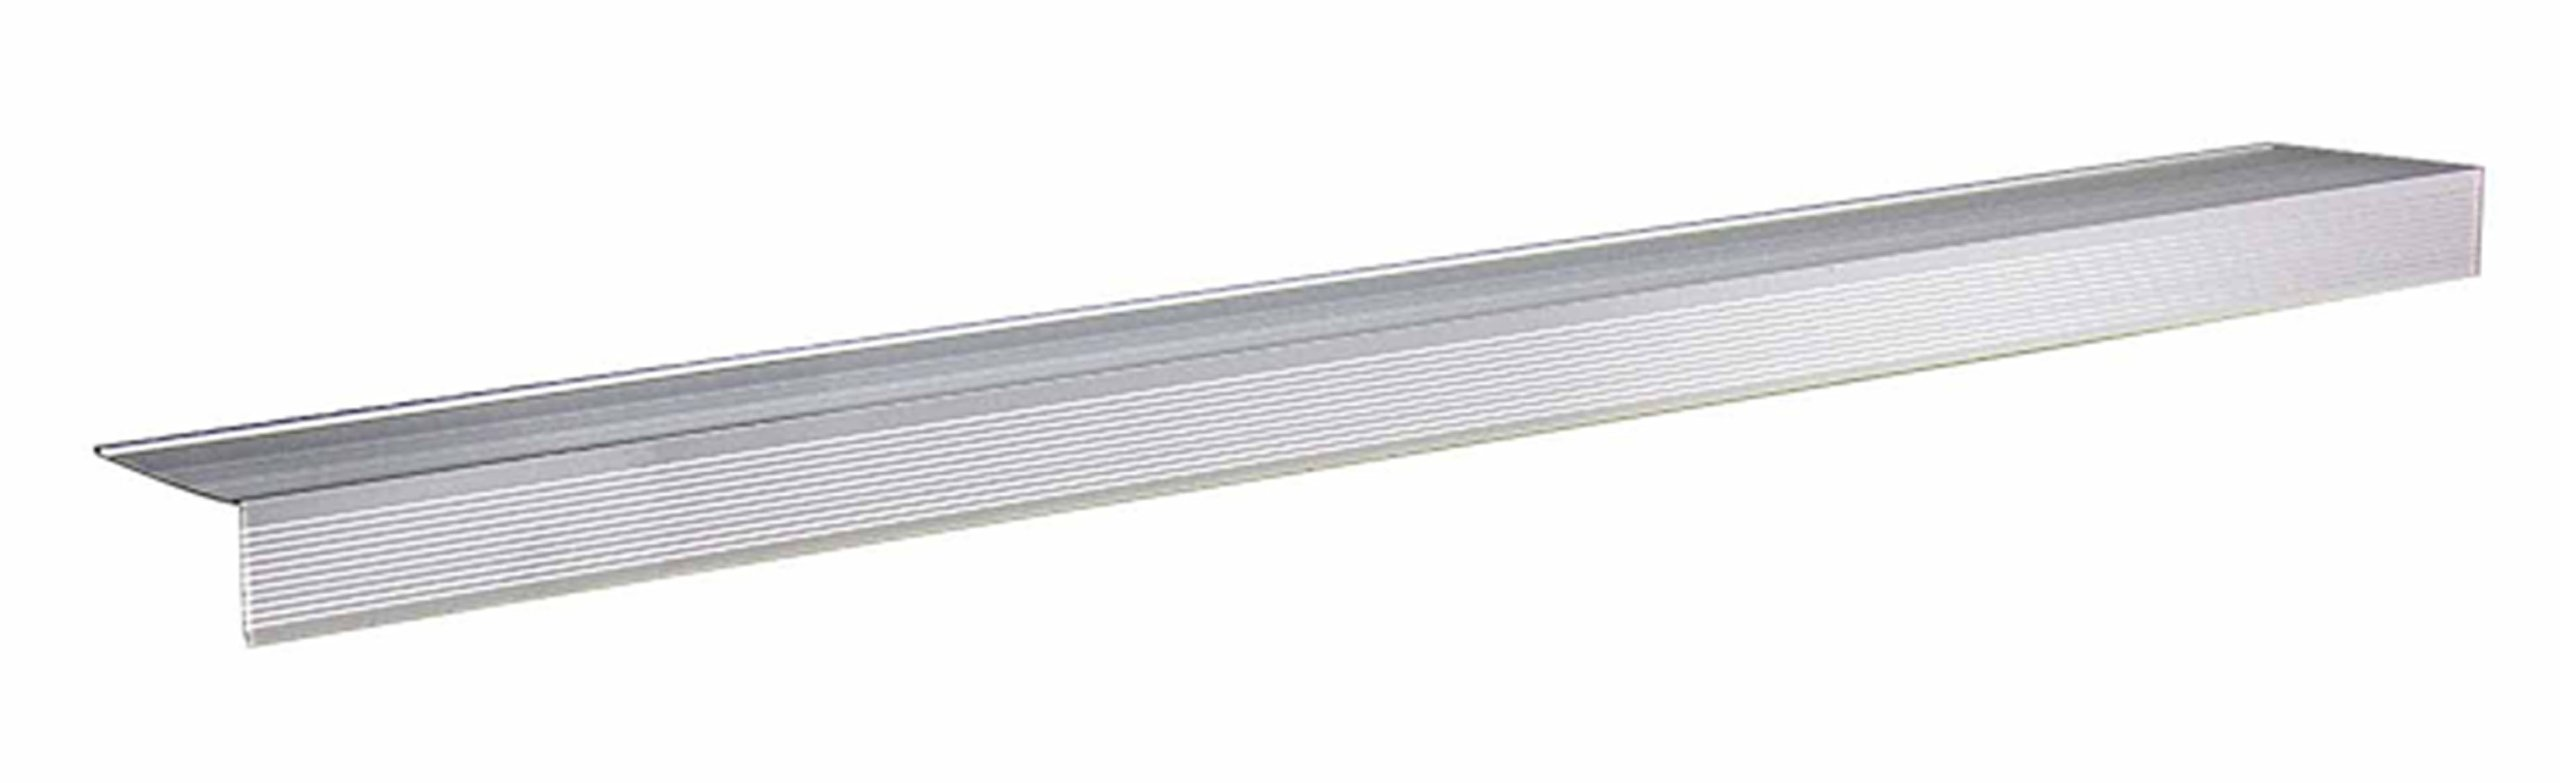 M-D Building Products 81877 2-3/4-Inch by 1-1/2-Inch by 72-Inch TH026 Sill Nosing, Mill